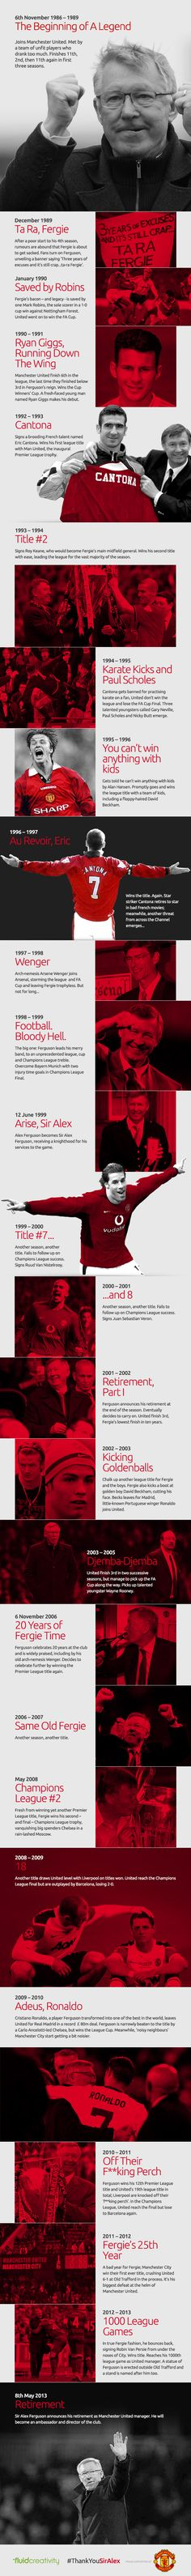 Soccer fans across the world were shocked at the sudden retirement of Sir Alex Ferguson, the legendary manager of Manchester United. This timeline infographic charts Fergie's 26 years of triumphs, tears and the infamous hairdryer treatment. Football Icon, Football Is Life, Best Football Team, Top Soccer, Soccer Fans, Football Workouts, Eric Cantona, Sir Alex Ferguson, Premier League Champions